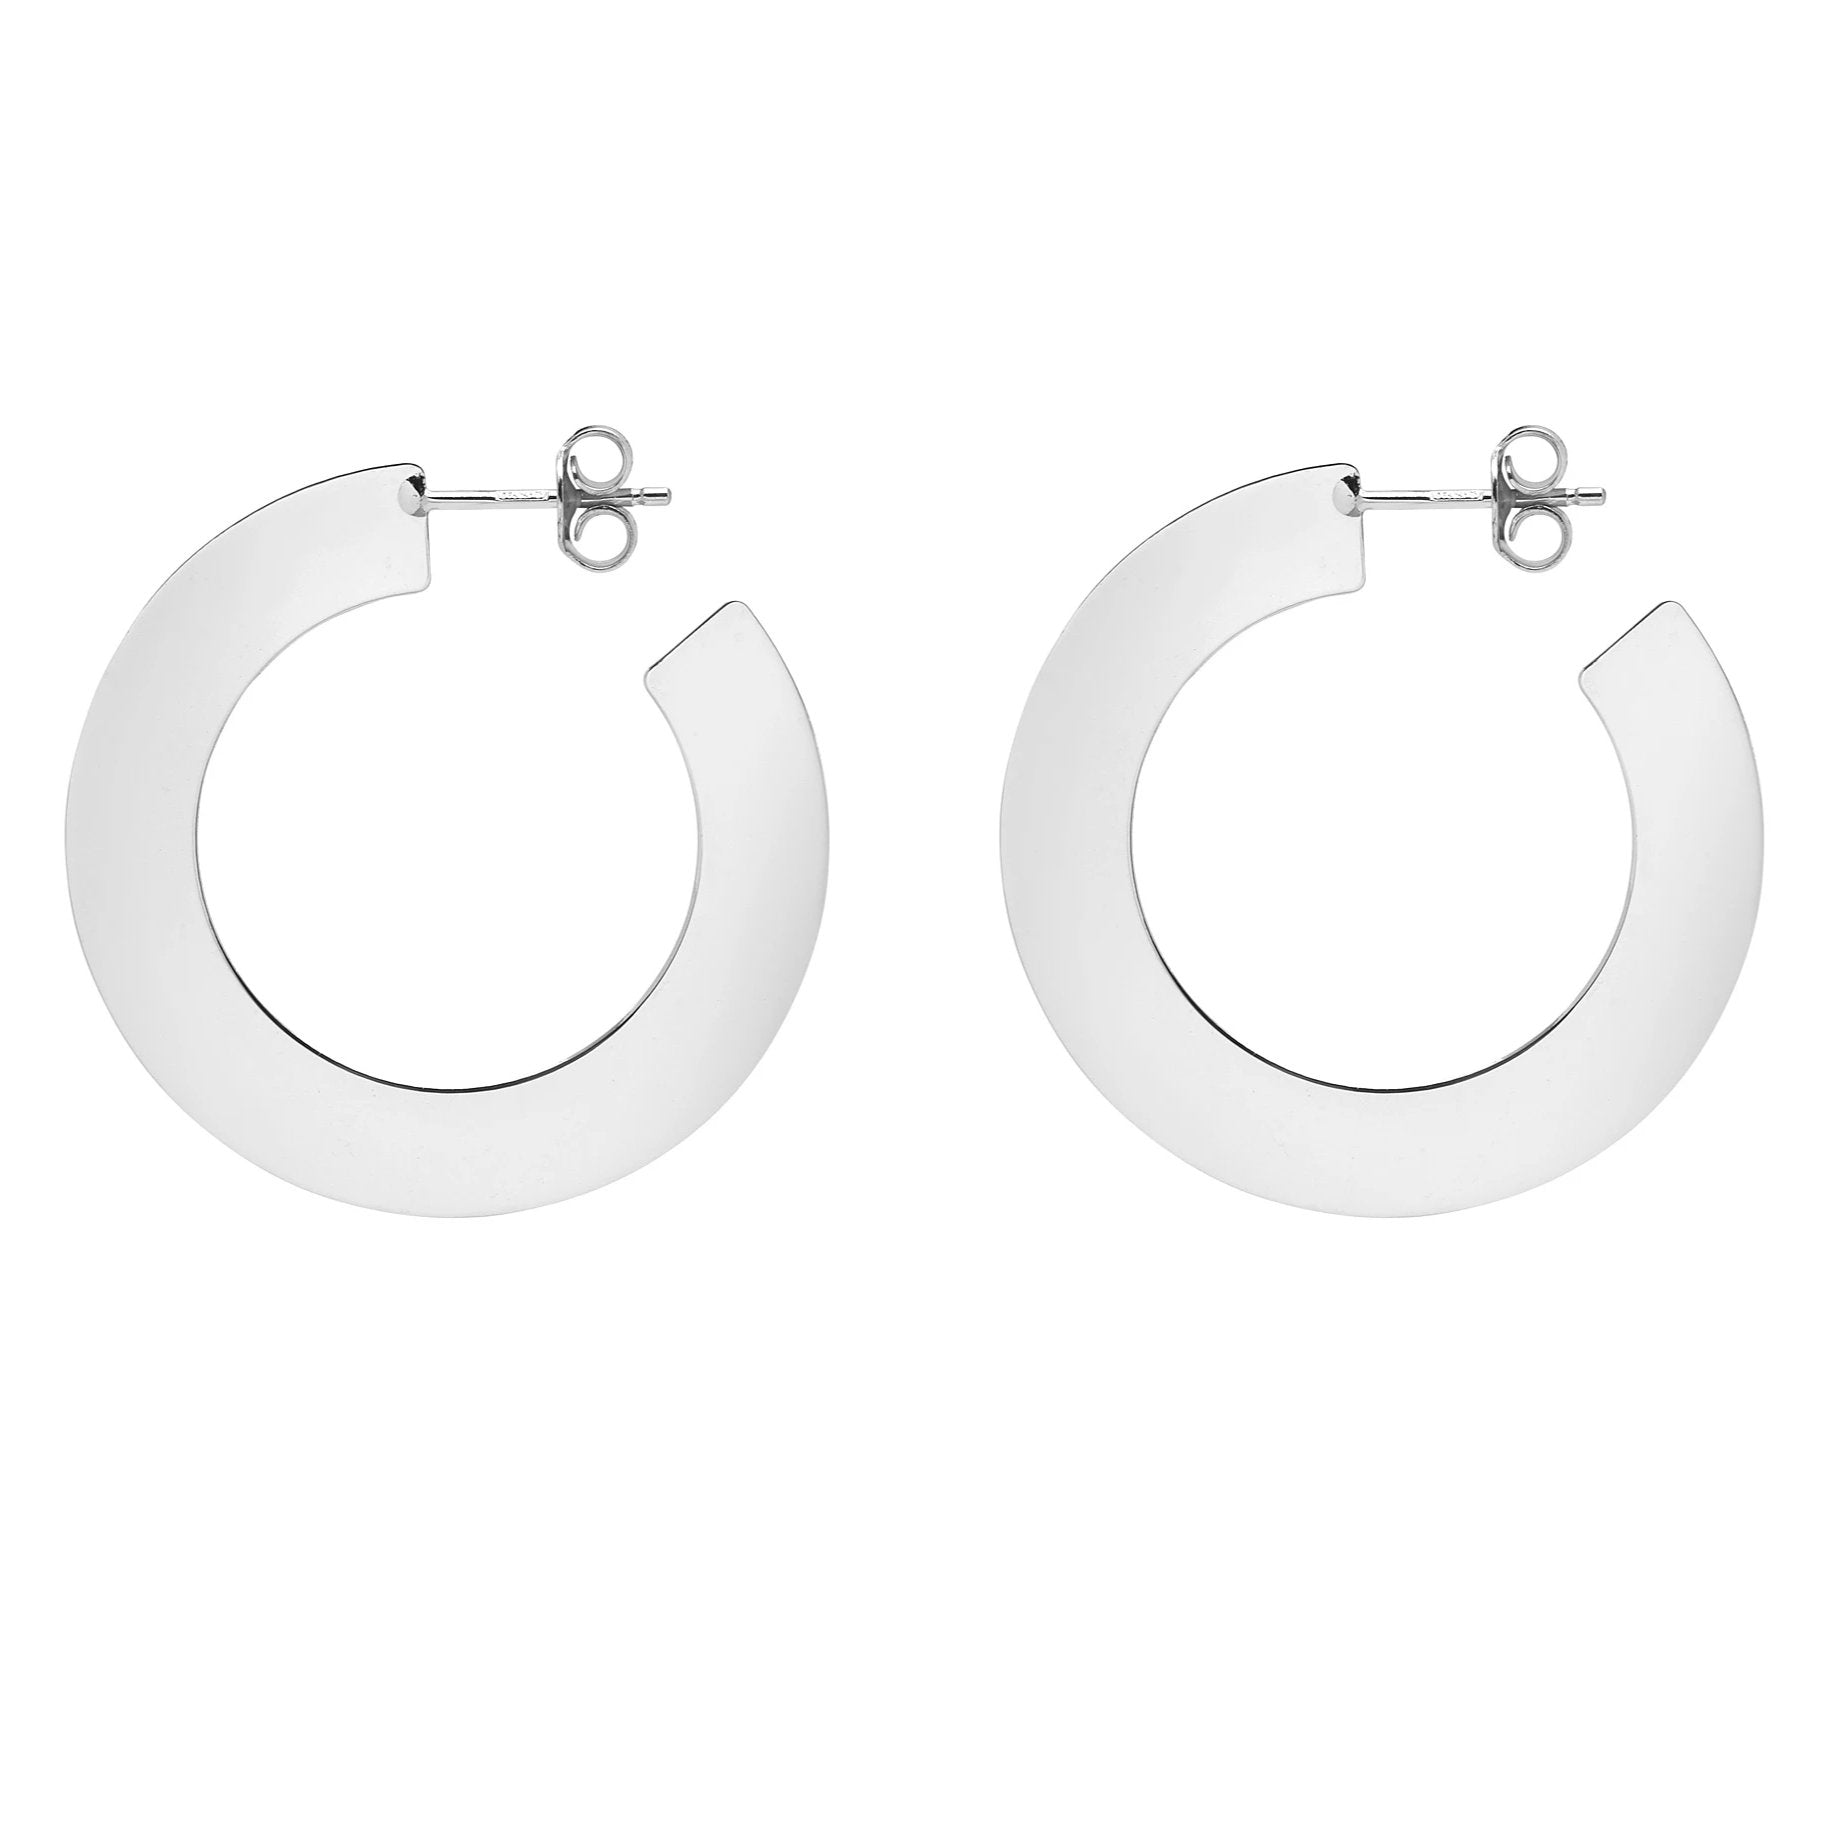 La SHINY SLICE - Silver - The Hoop Station 925 Sterling Silver Hoop Earrings Gold Huggies